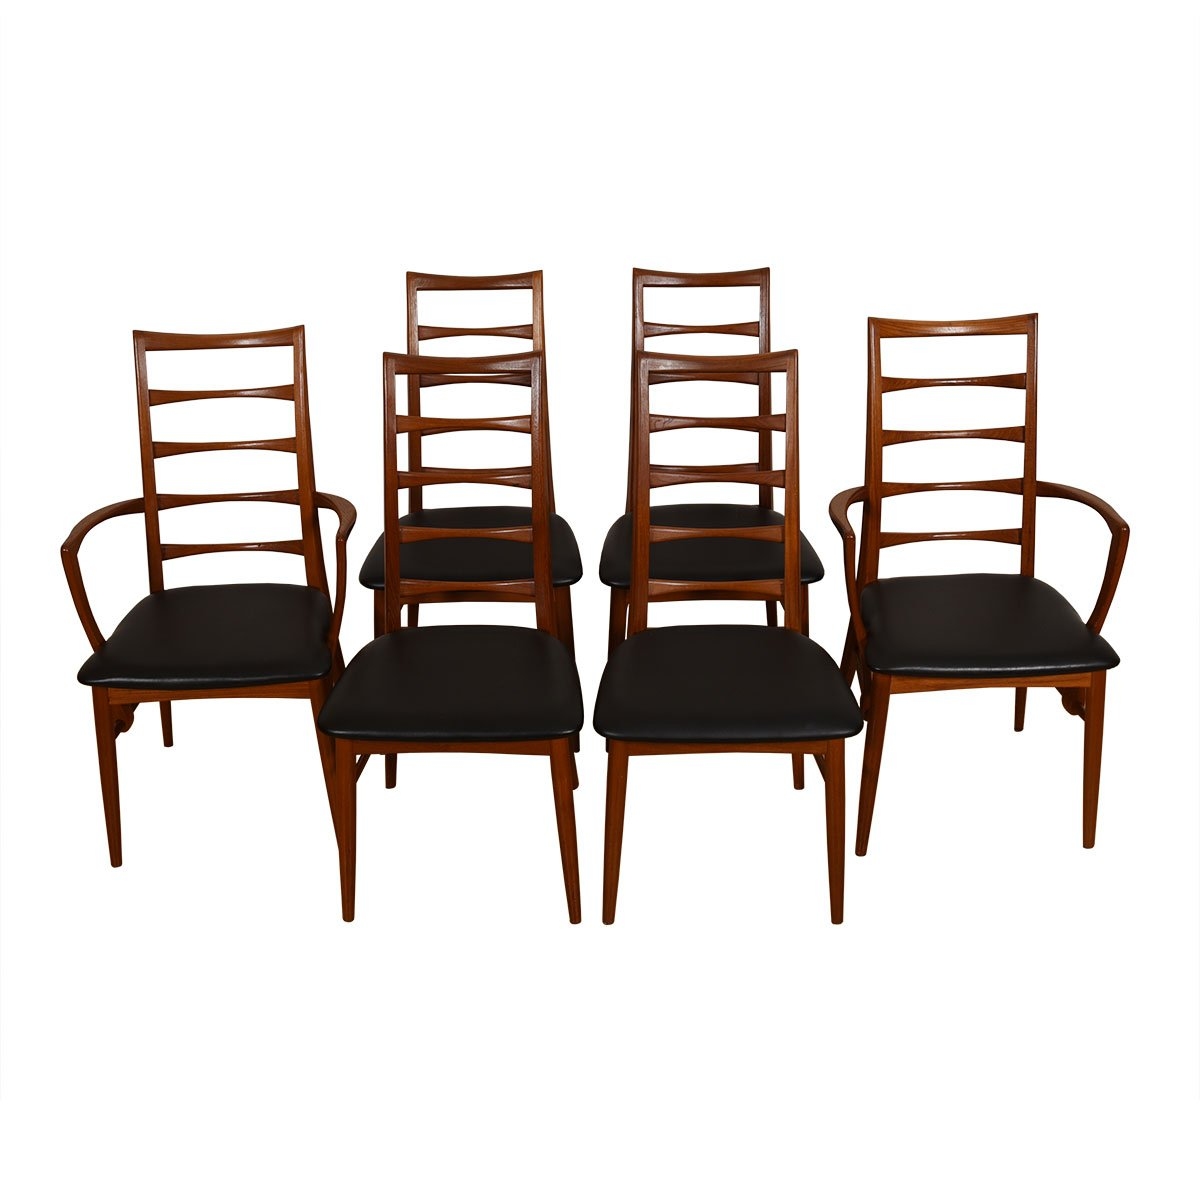 Danish Teak Set of 6 (2 Arm + 4 Side) Dining Chairs by Koefoeds Hornslet